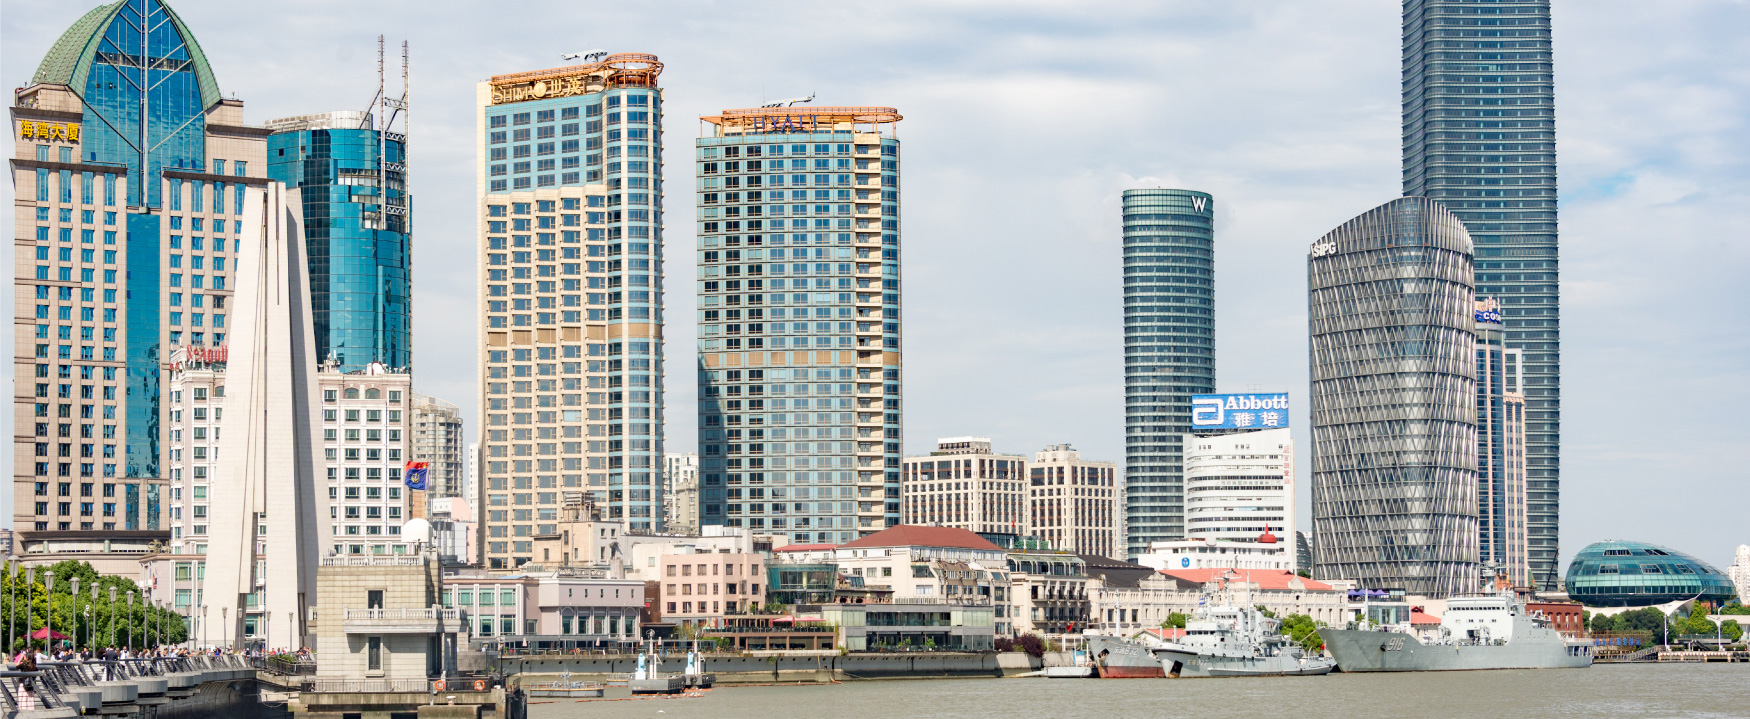 A photograph shows a port city skyline, where the buildings all appear to be very new, and very sleek.